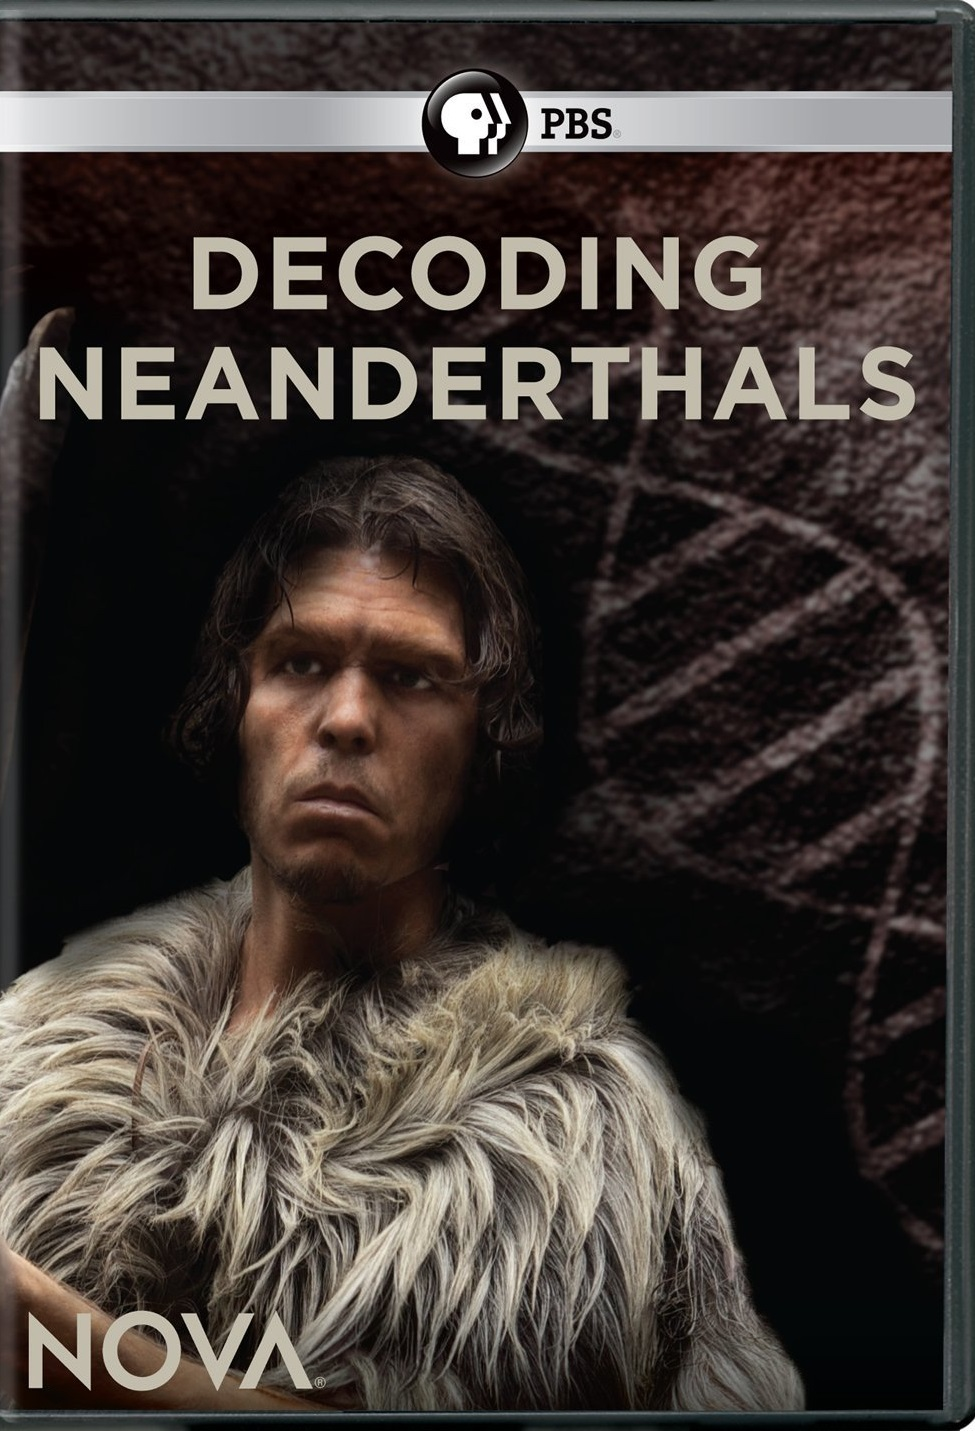 decoding neanderthals Nova: decoding neanderthals dvd - av item,over 60,000 years ago, the first modern humans left their african homeland and entered europe, then a bleak and inhospitable.